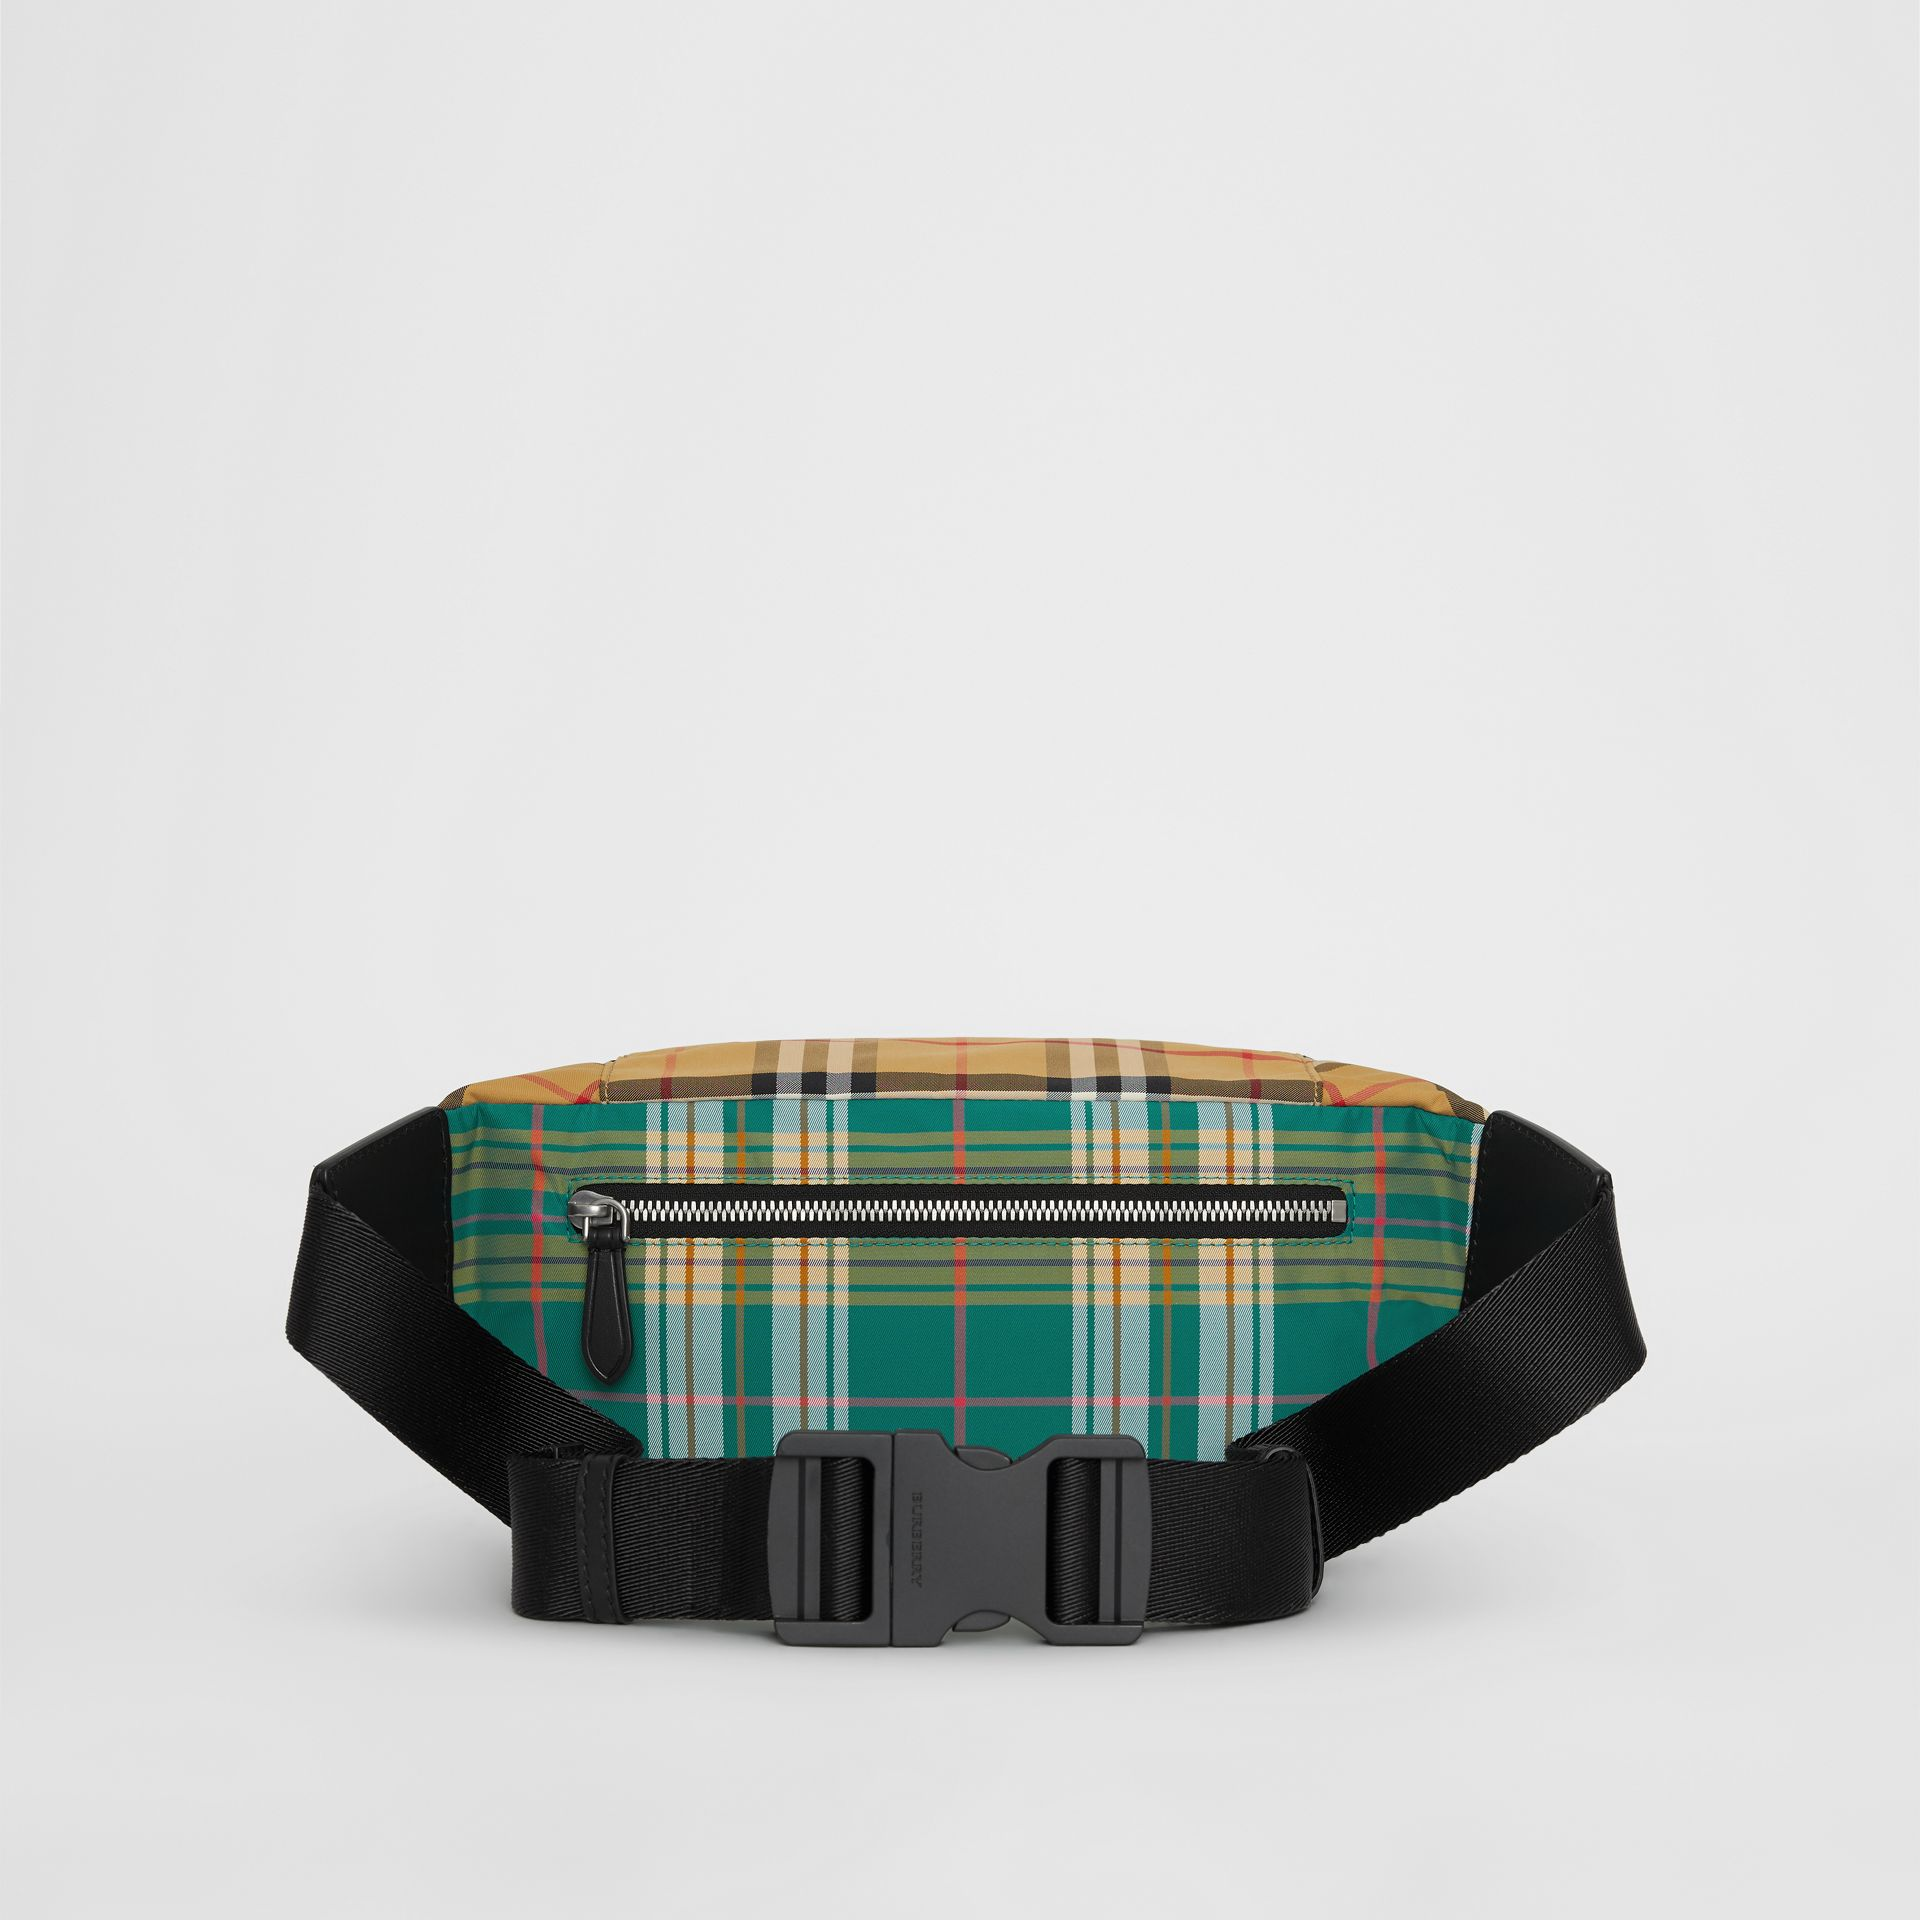 Medium Vintage Check and Tartan Bum Bag in Pine Green | Burberry - gallery image 5